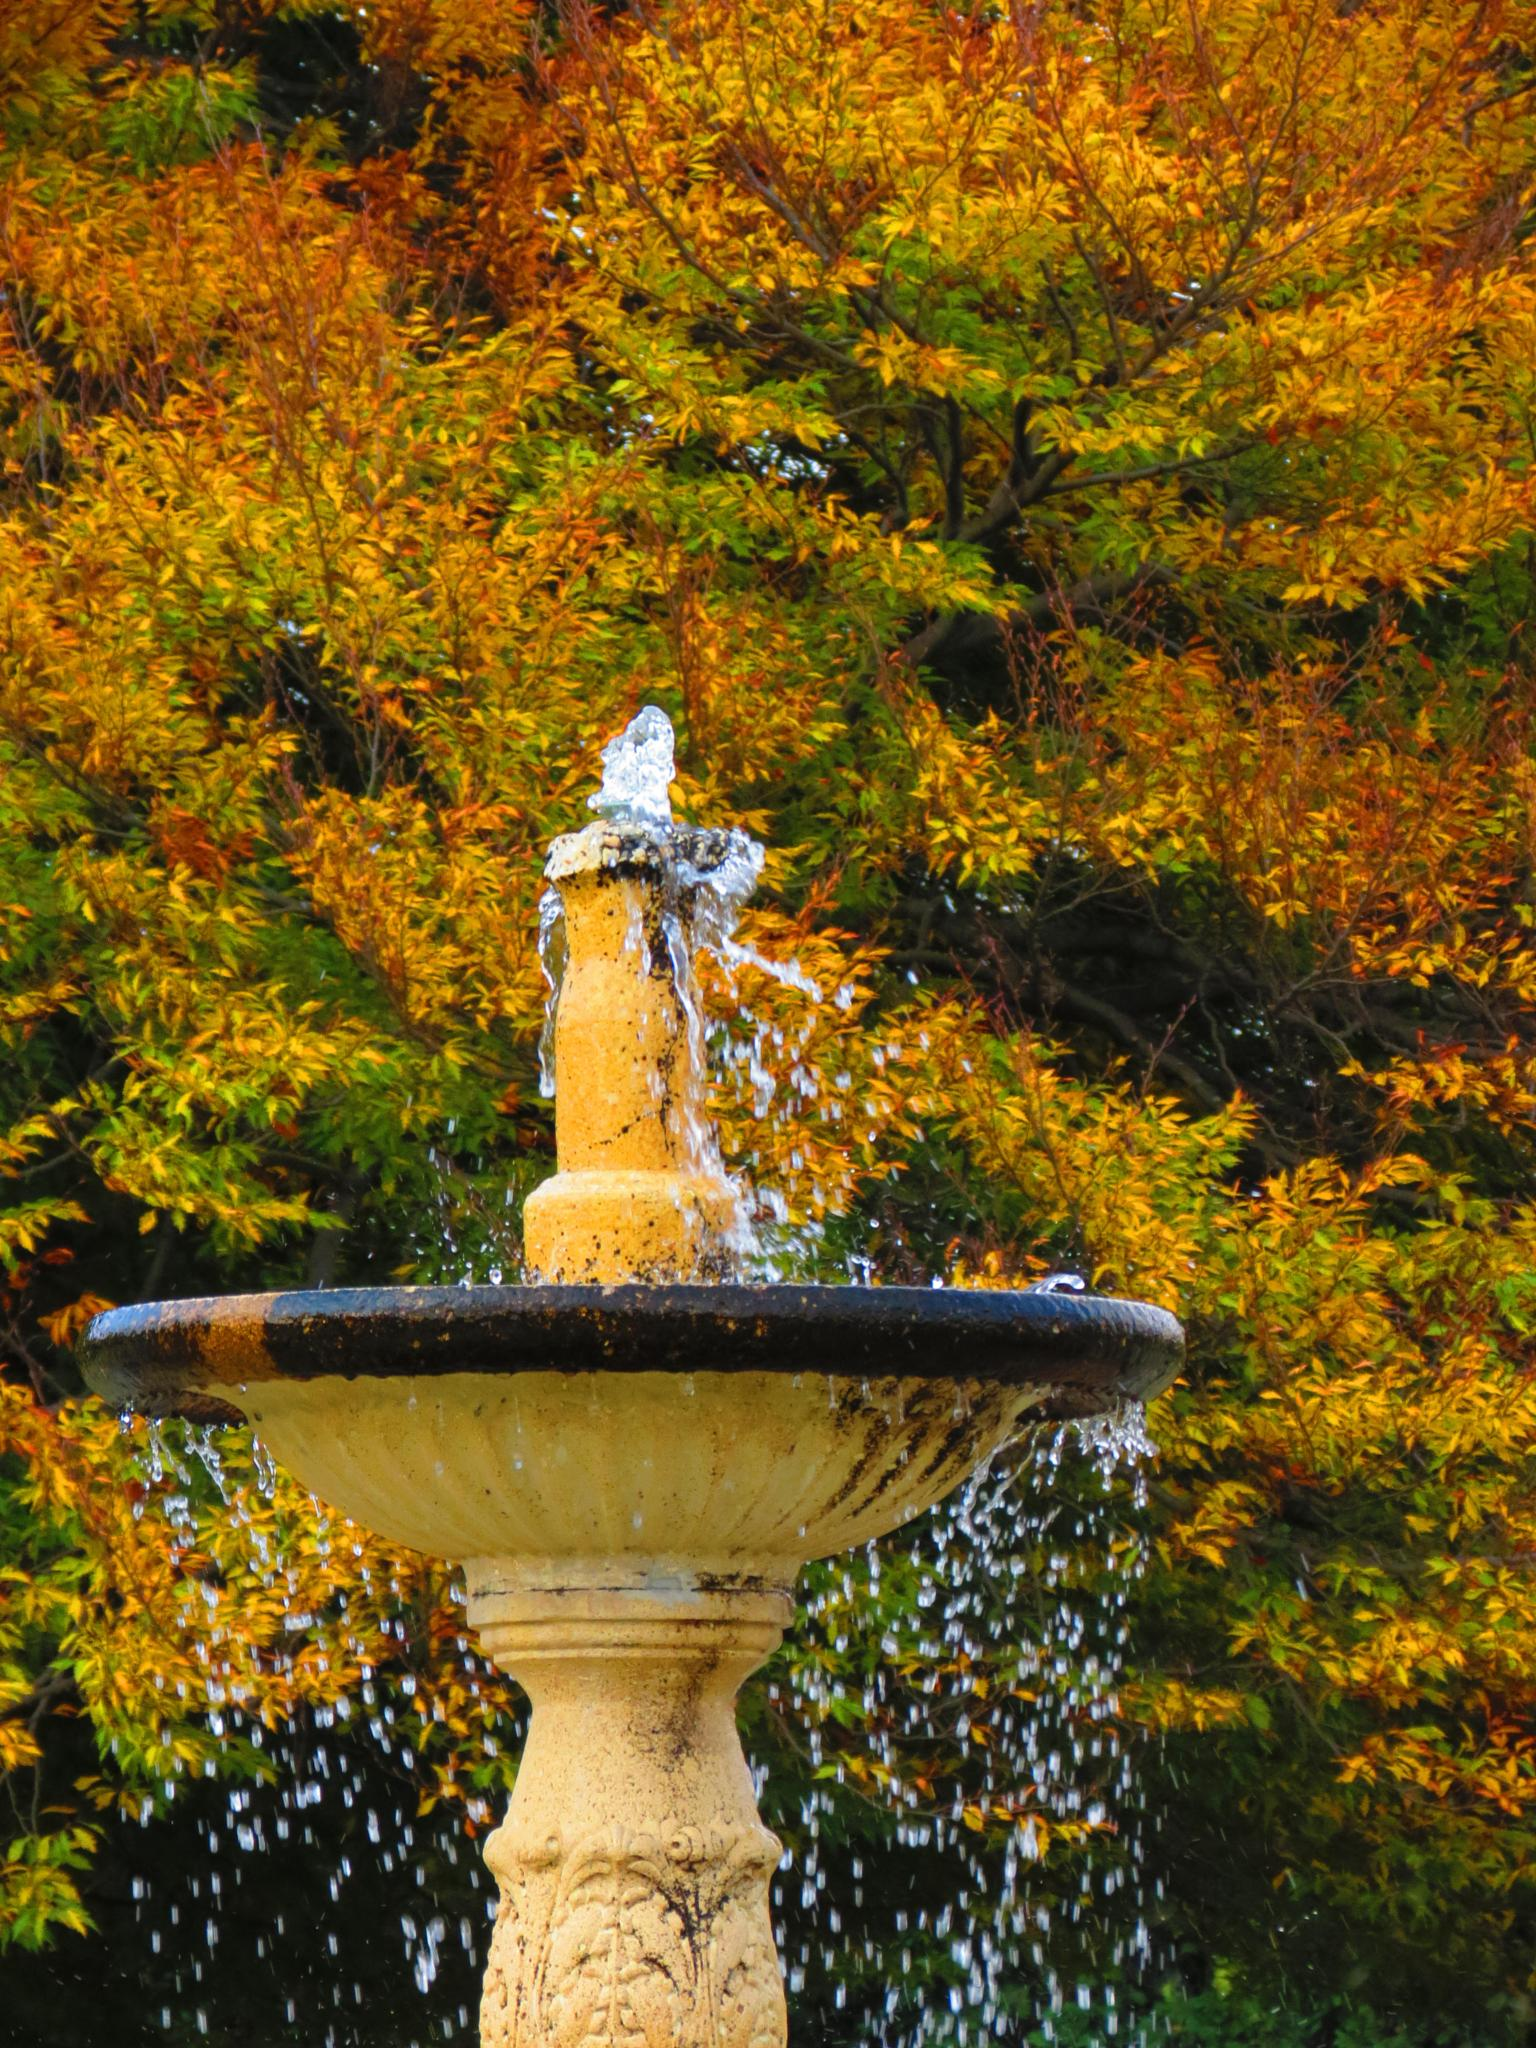 Fountain in the Fall by sweiland